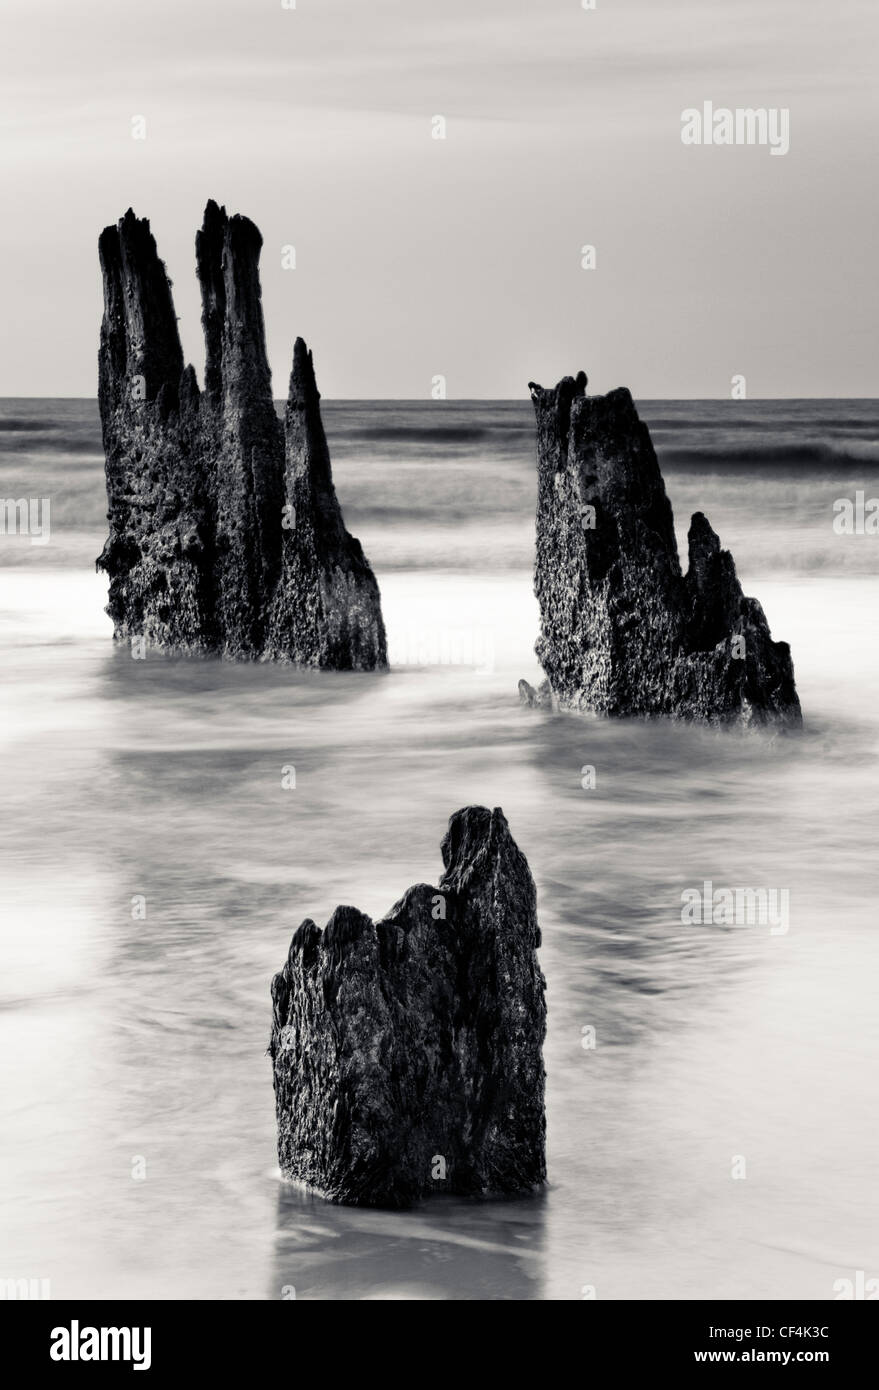 Three remaining wooden posts from an old jetty, jutting out of the sea at Walberswick in Suffolk. - Stock Image